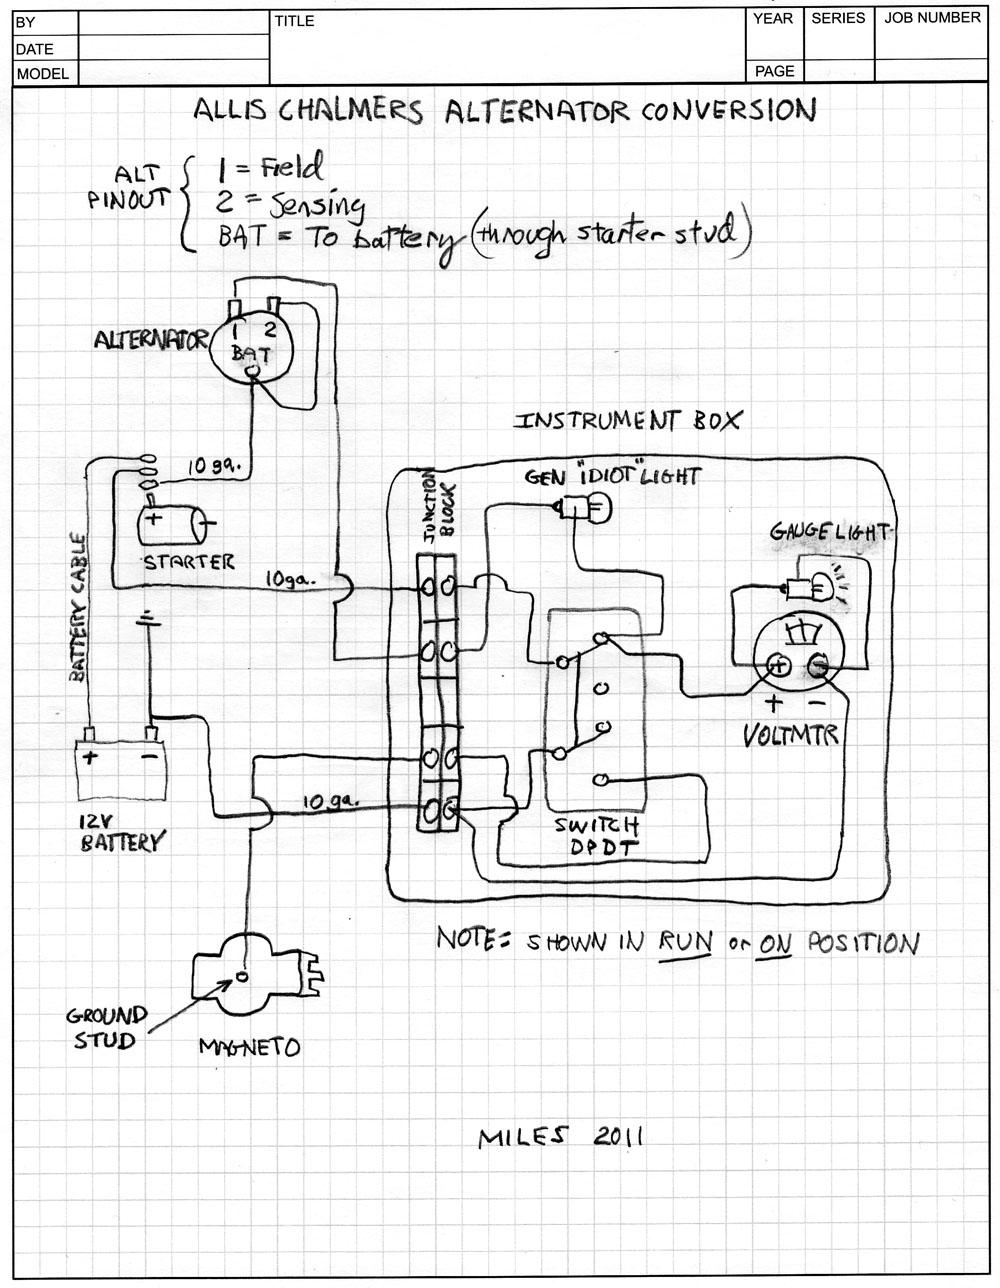 Allis Chalmers B alternator conversion schematic